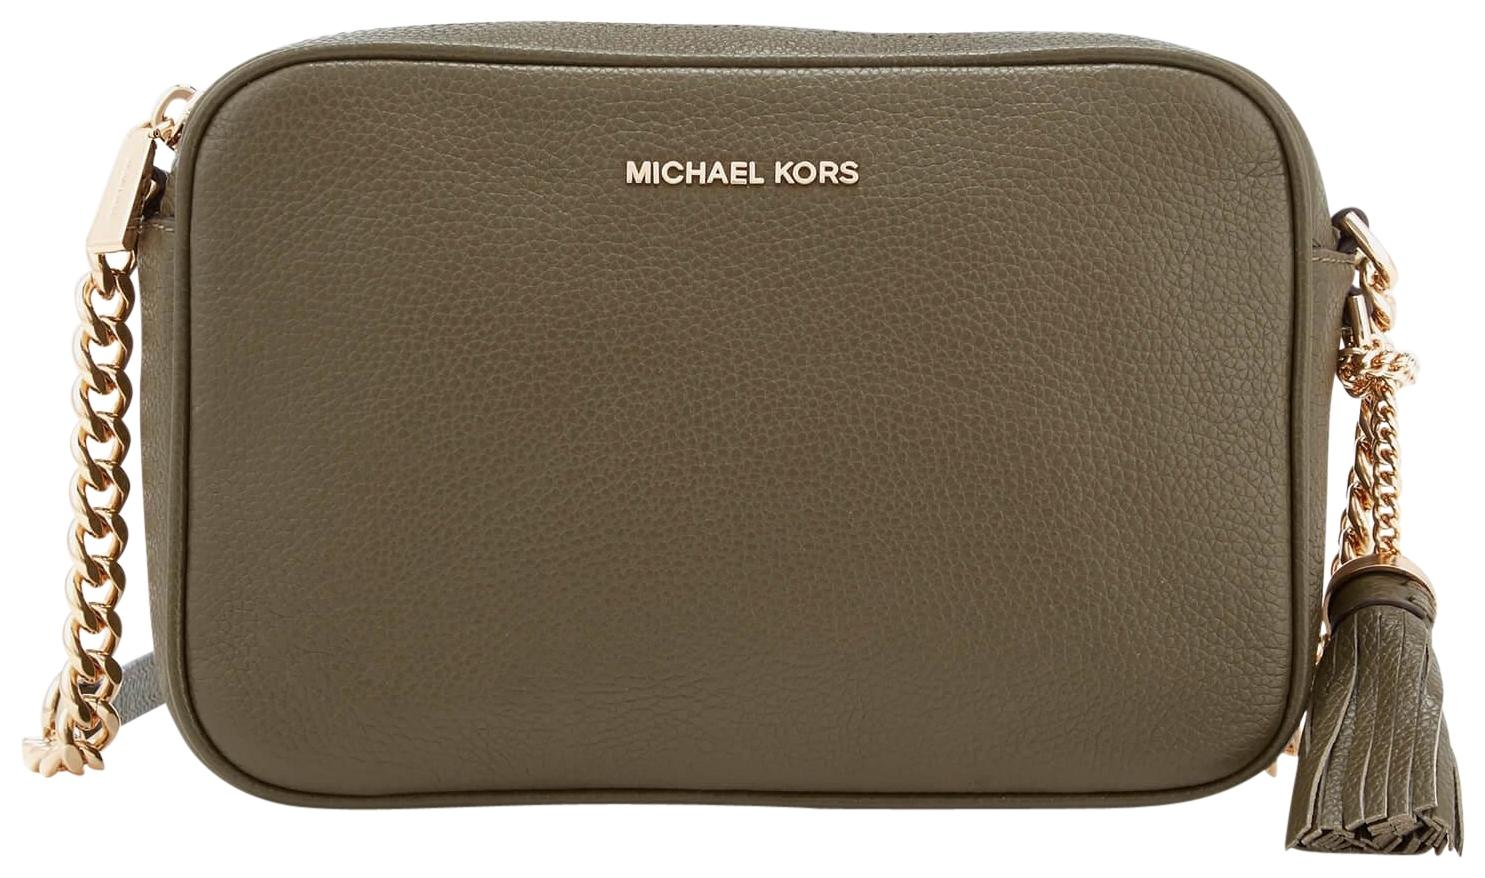 ee3123bfbe53 ... purse 611e2 42faf sale michael kors green bags up to 90 off at tradesy  1014d a59d1 ...